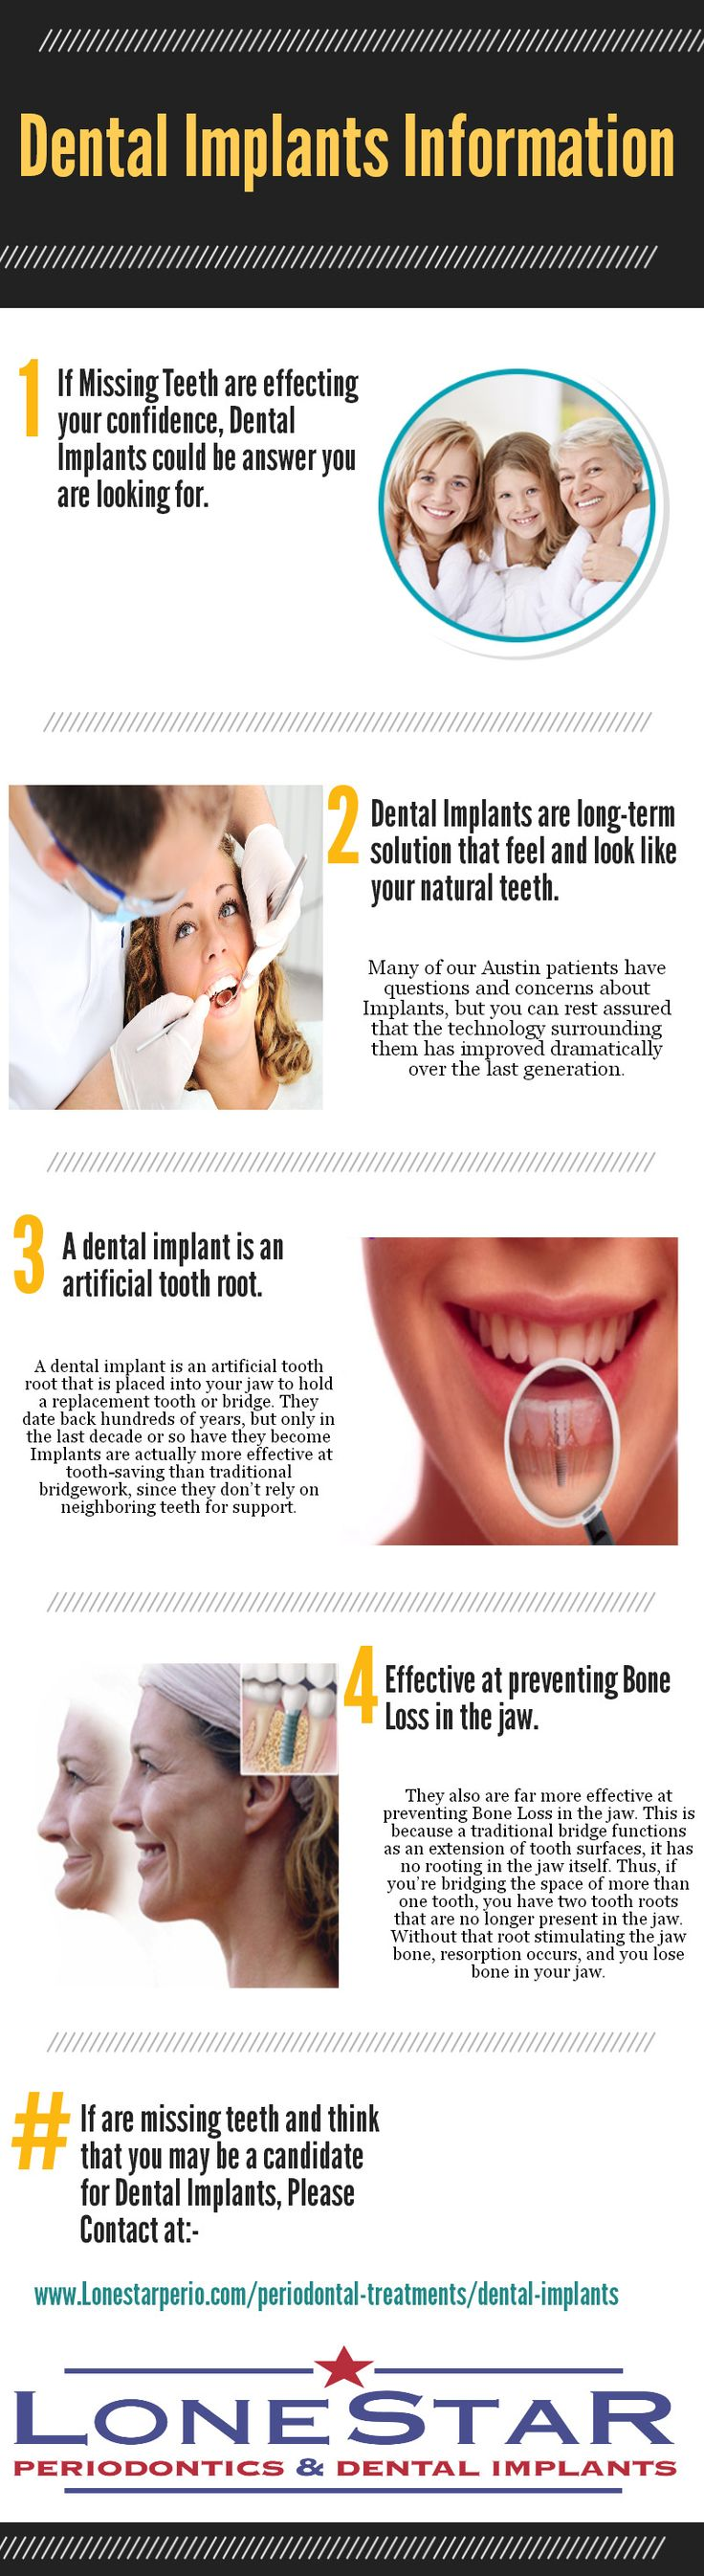 Austin Dental Implants for your better dental care!   #DentalImplants #Smile #Teeth #Care